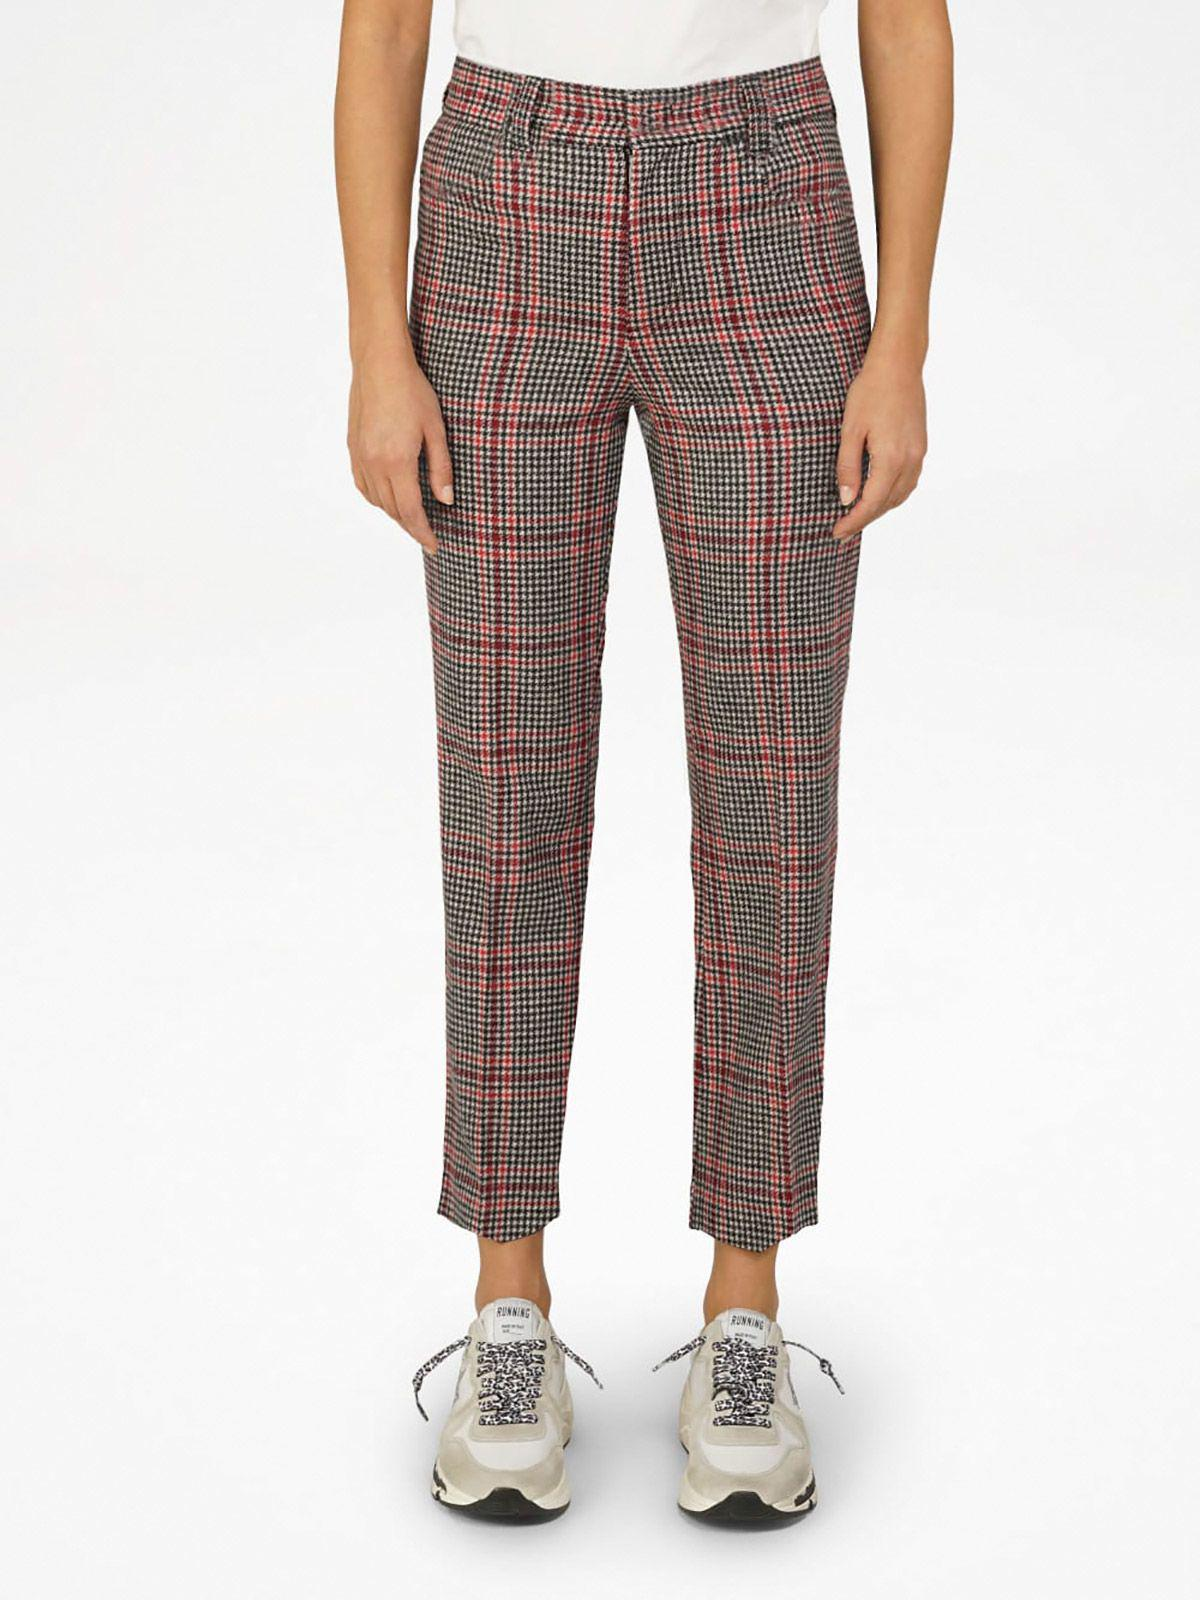 Algisa trousers with houndstooth tartan pattern